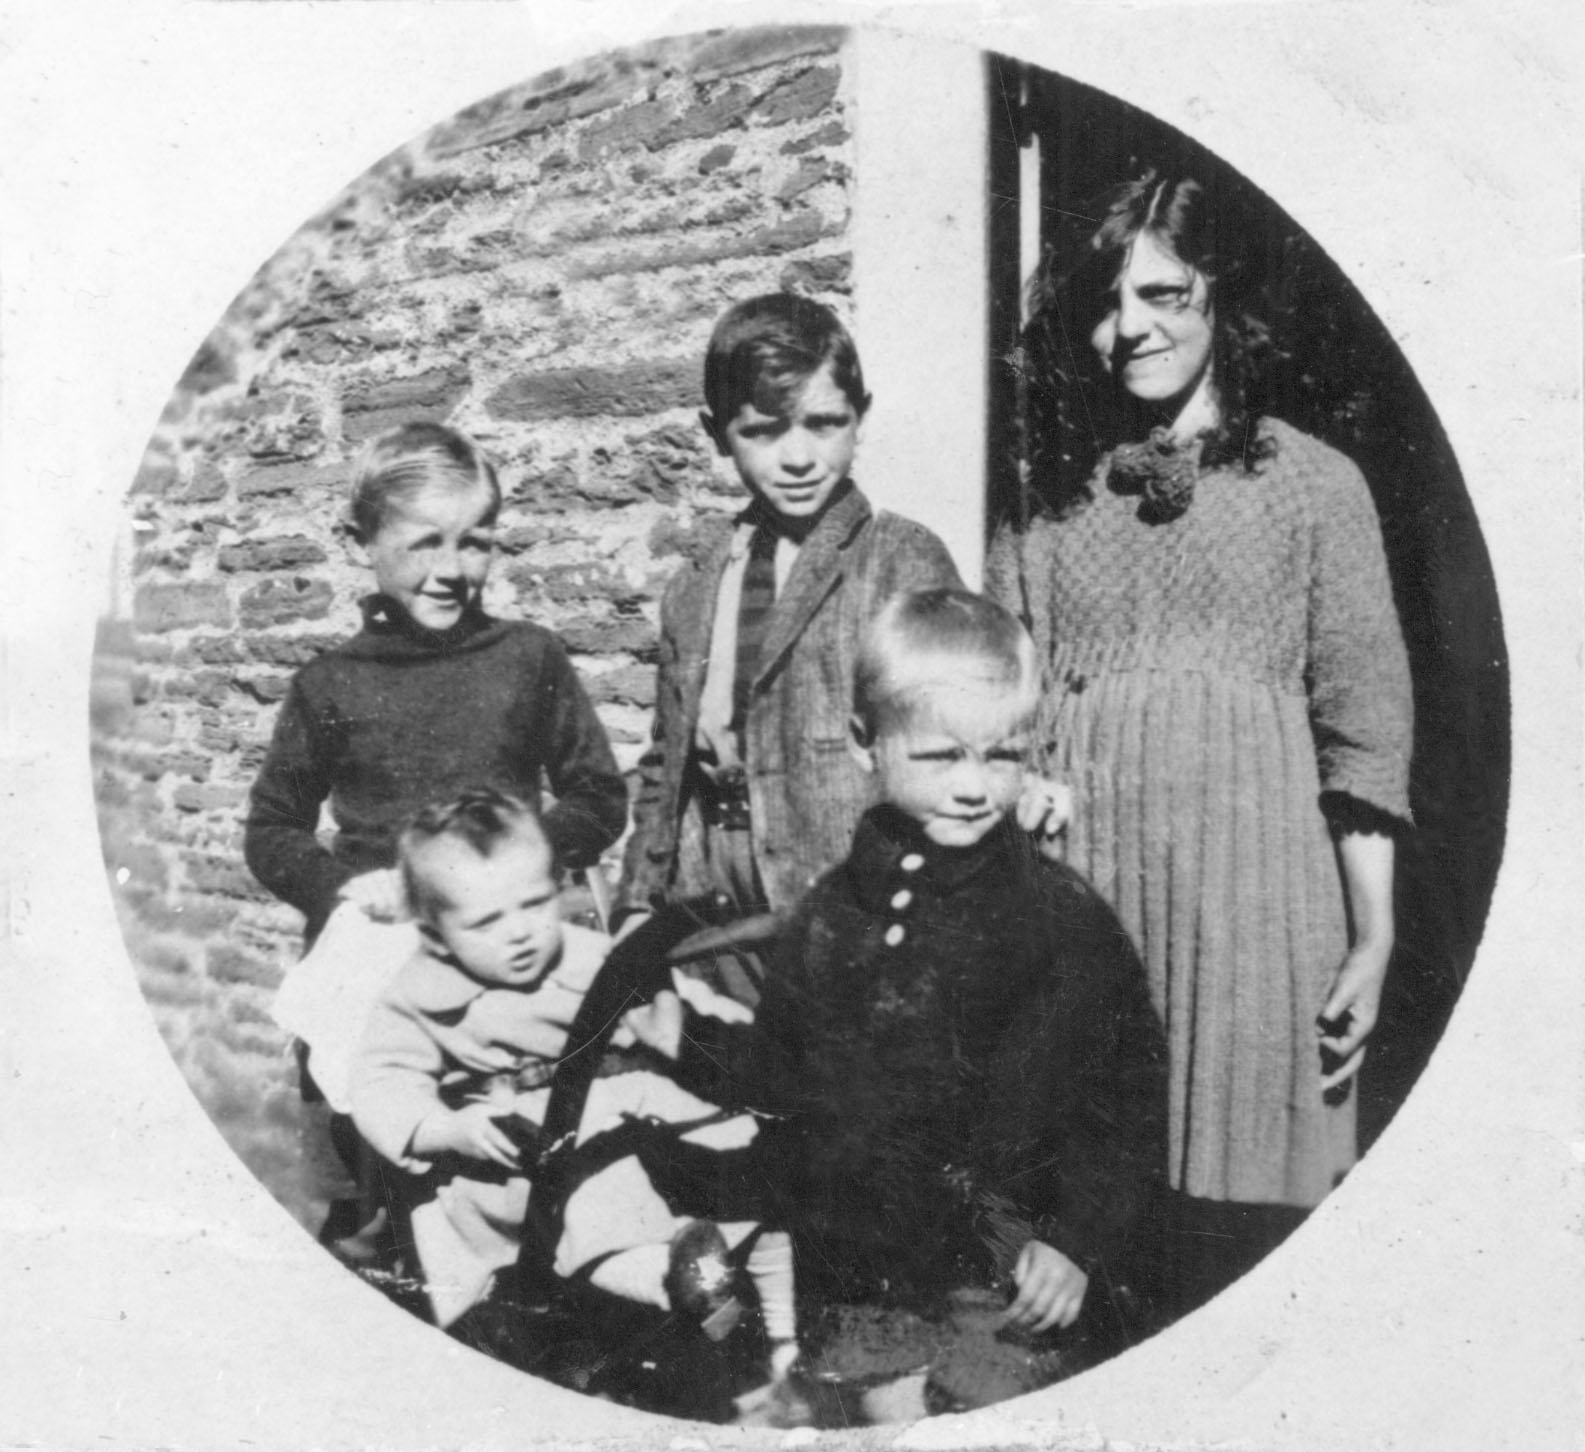 GMB as a baby with his siblings, later to become the famous Orkney poet - Stromness, Orkney Islands, Scotland